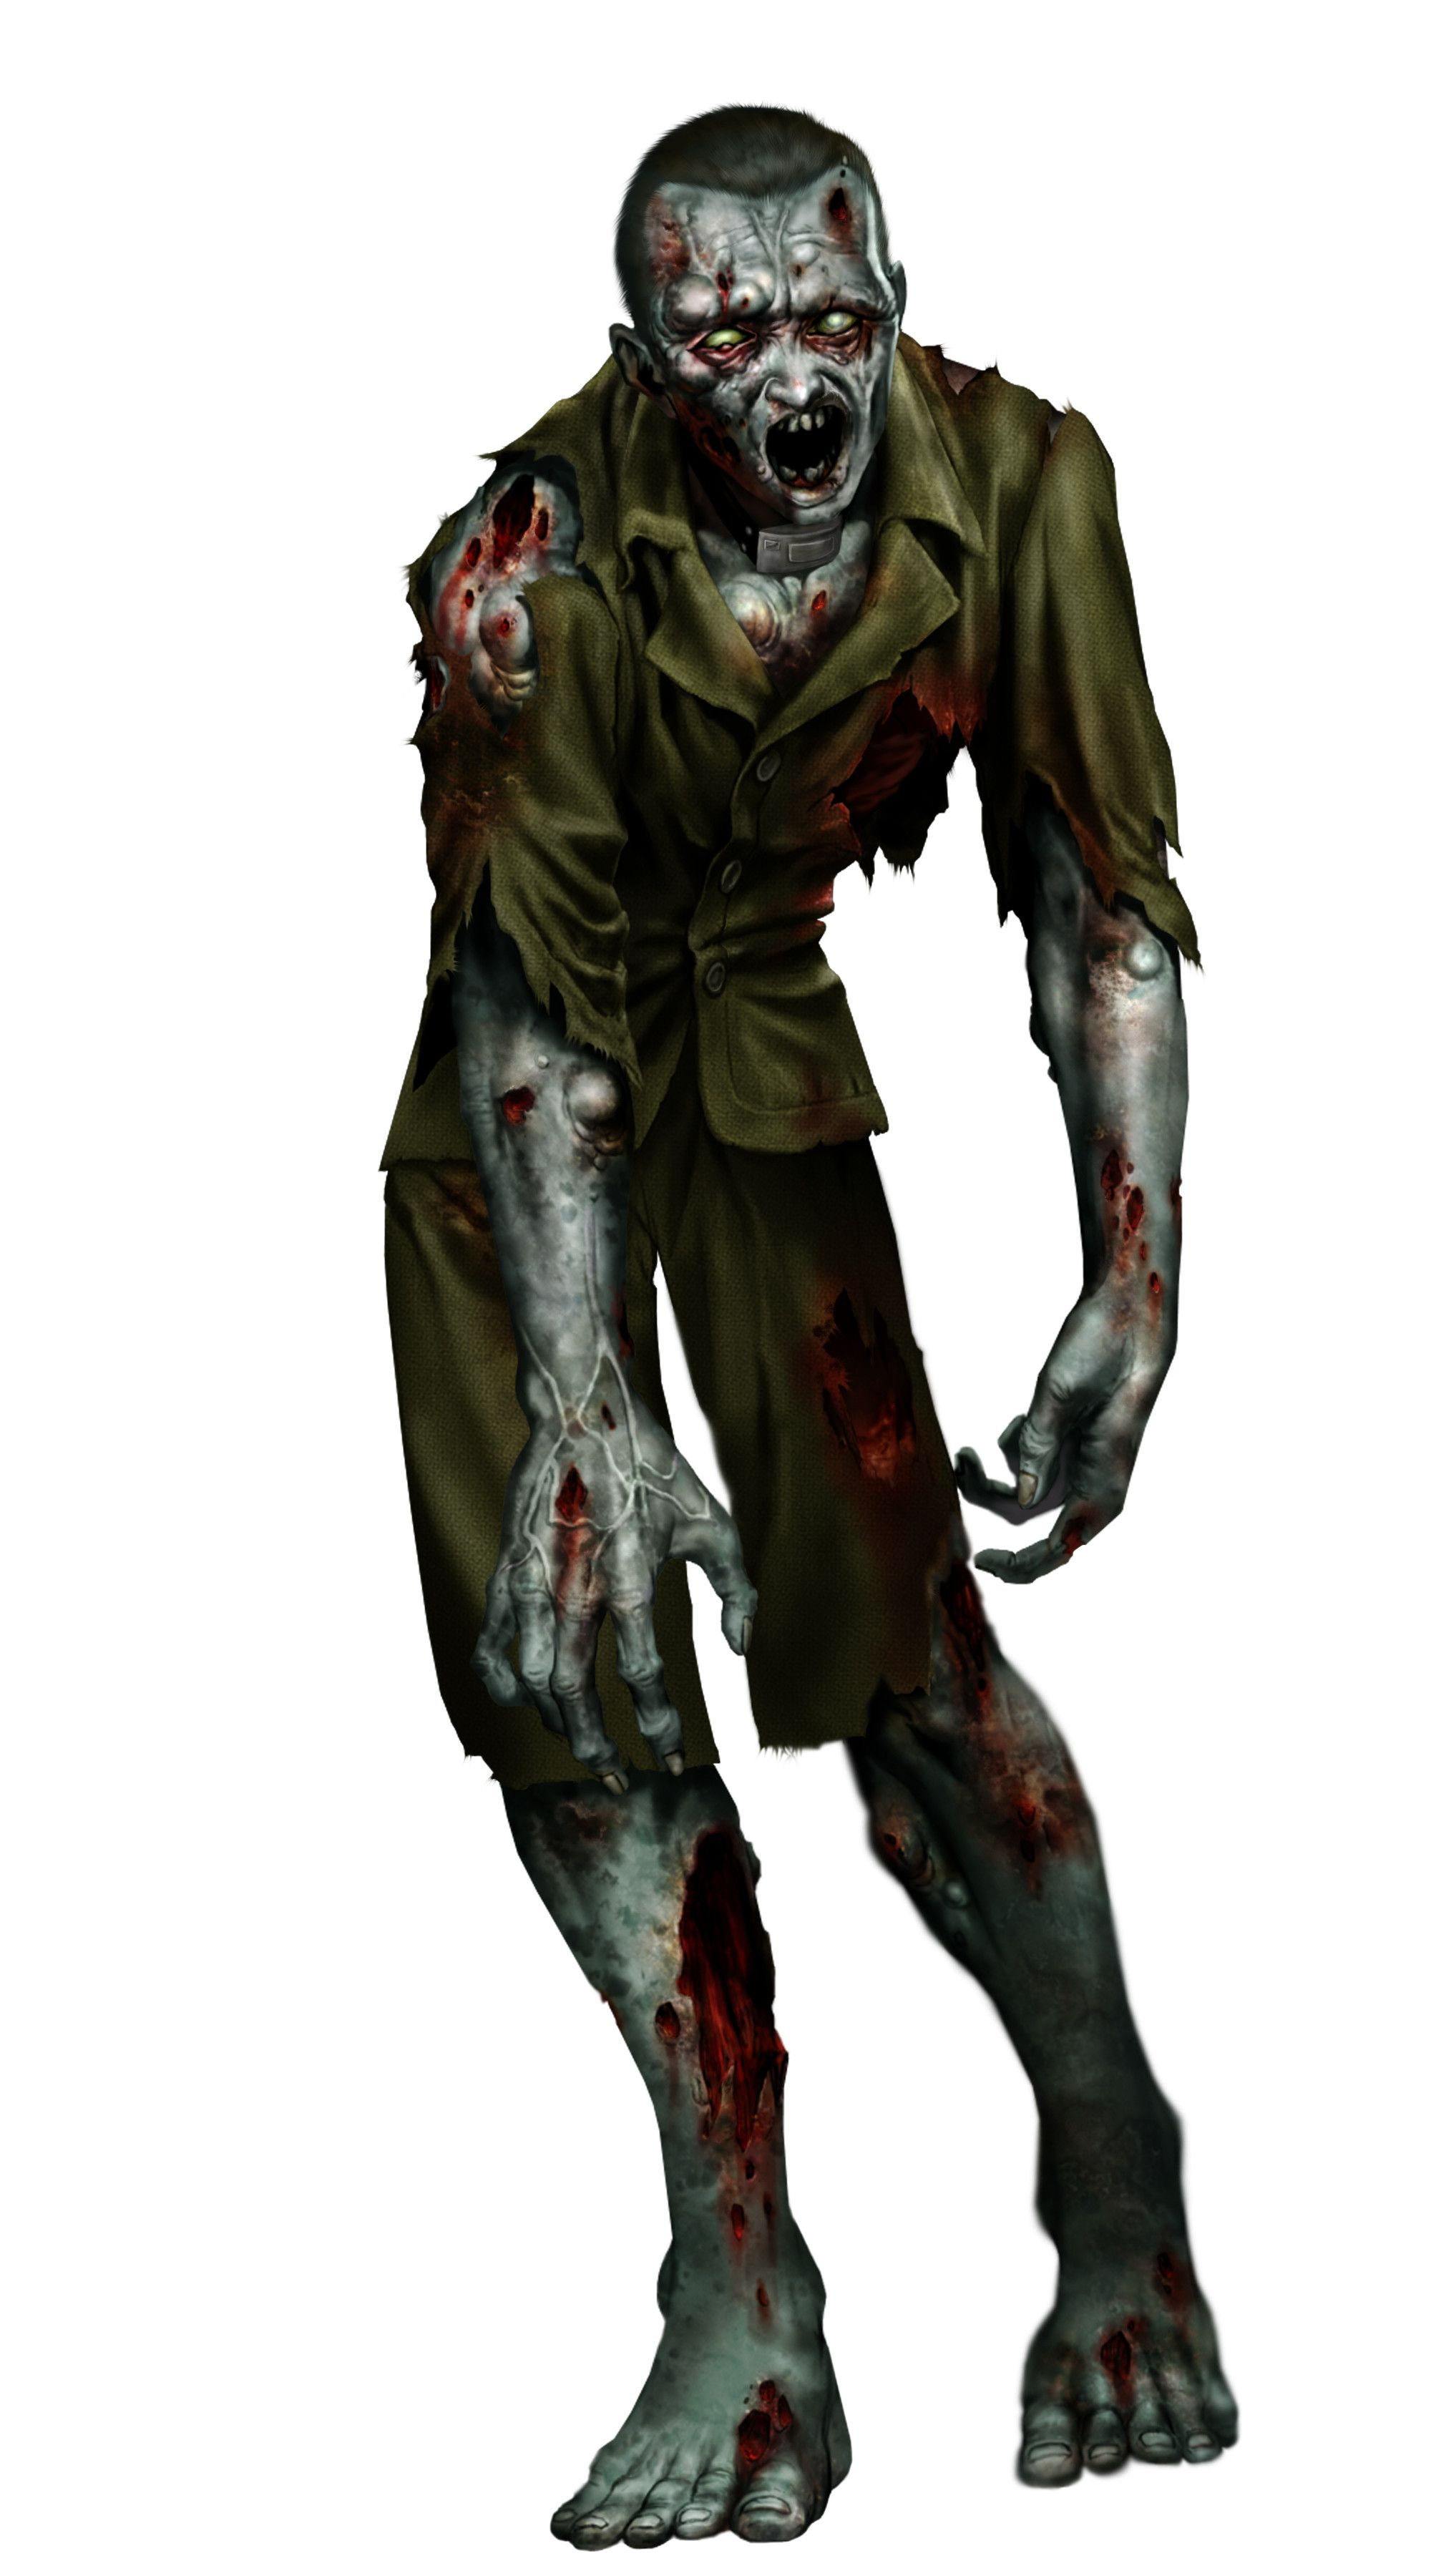 BIO3/BIO0/BIOCV Concept Art in 2019 | RPG Portraits | Zombie art